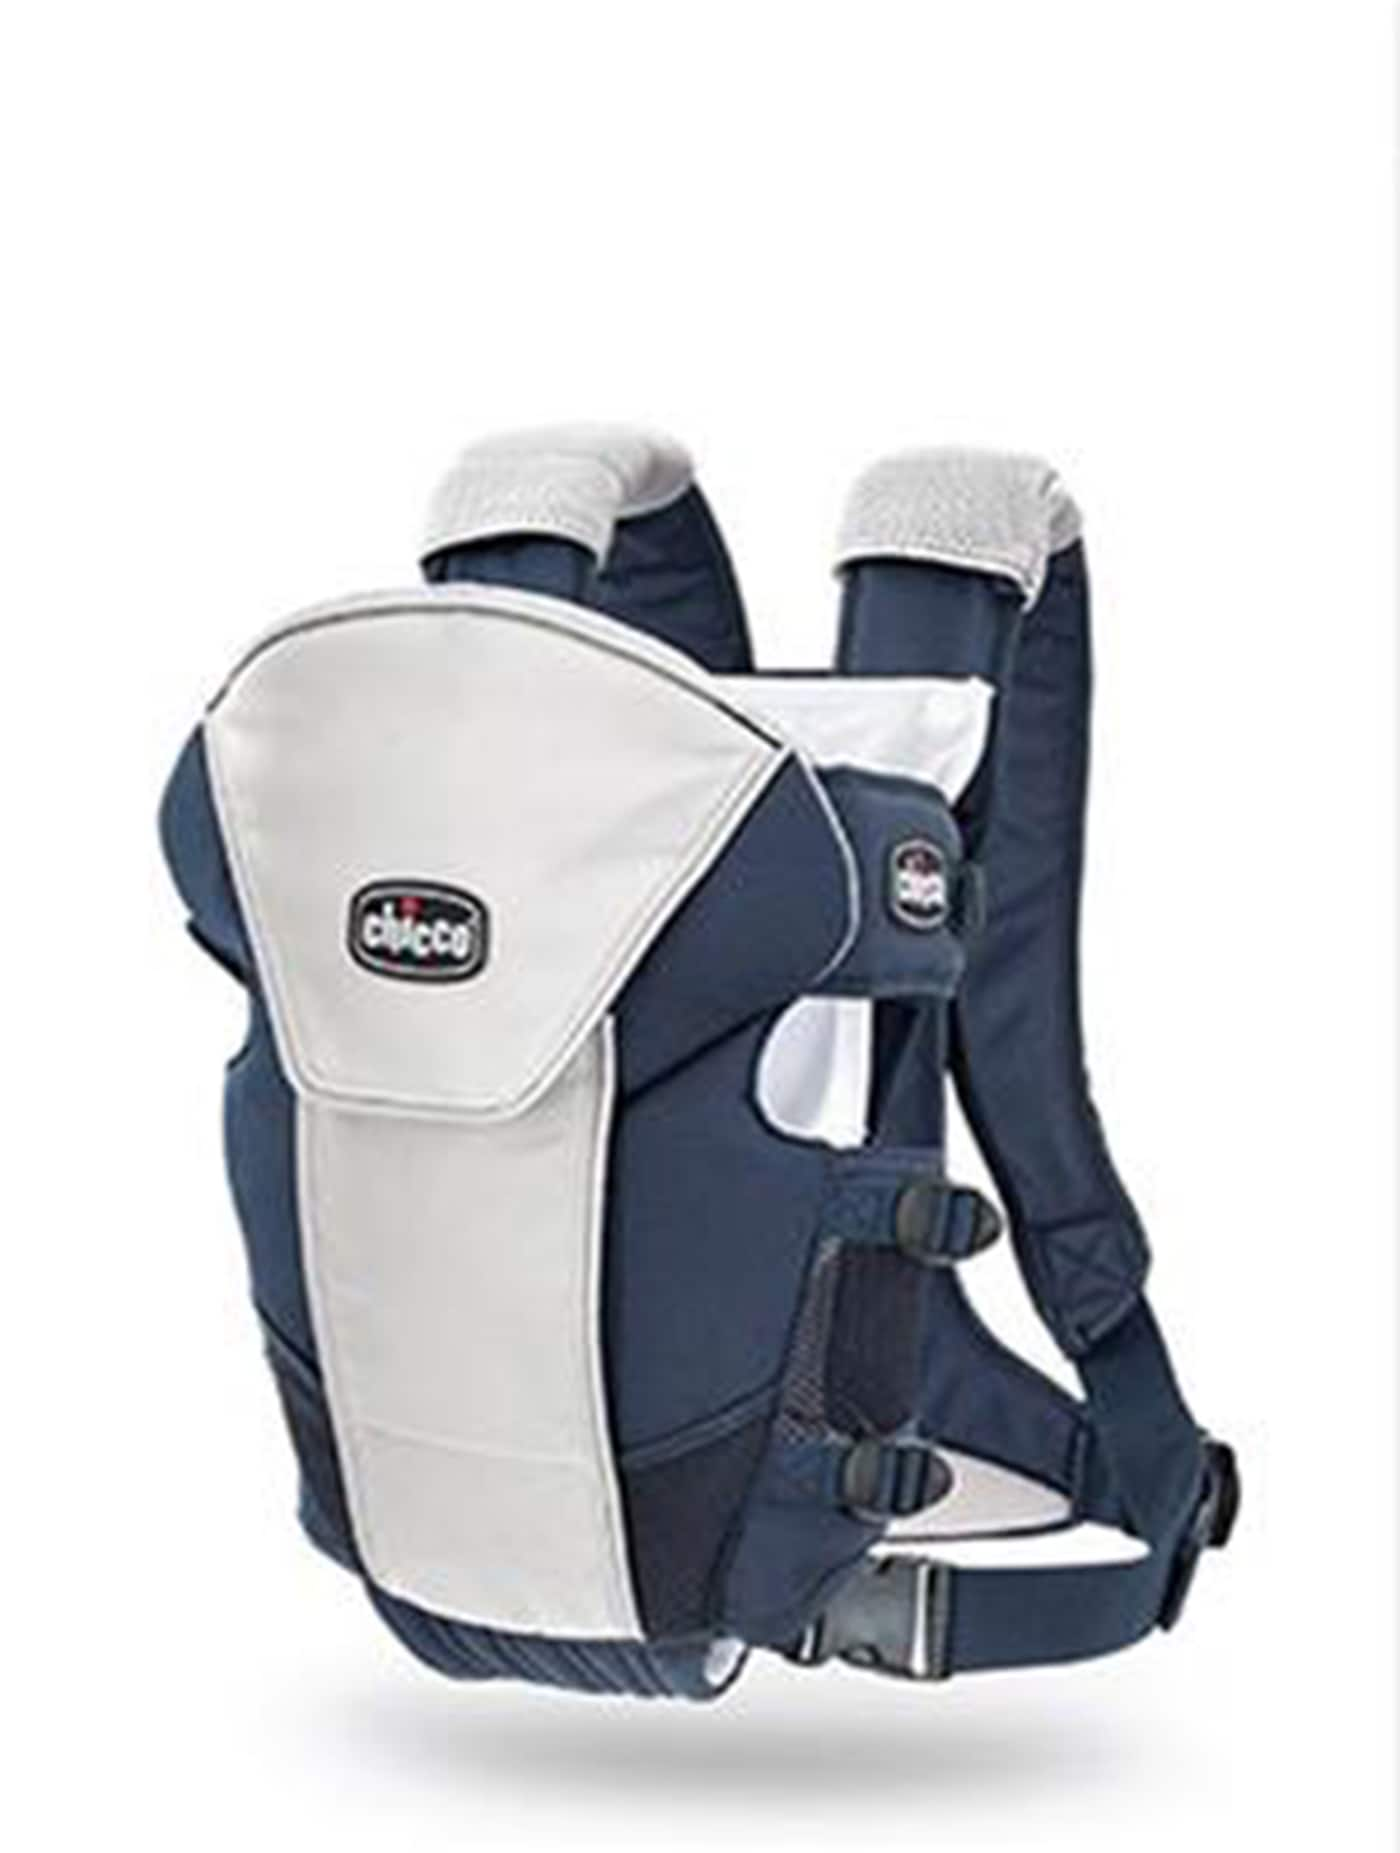 ULTRA SOFT BABY CARRIER EQUIN